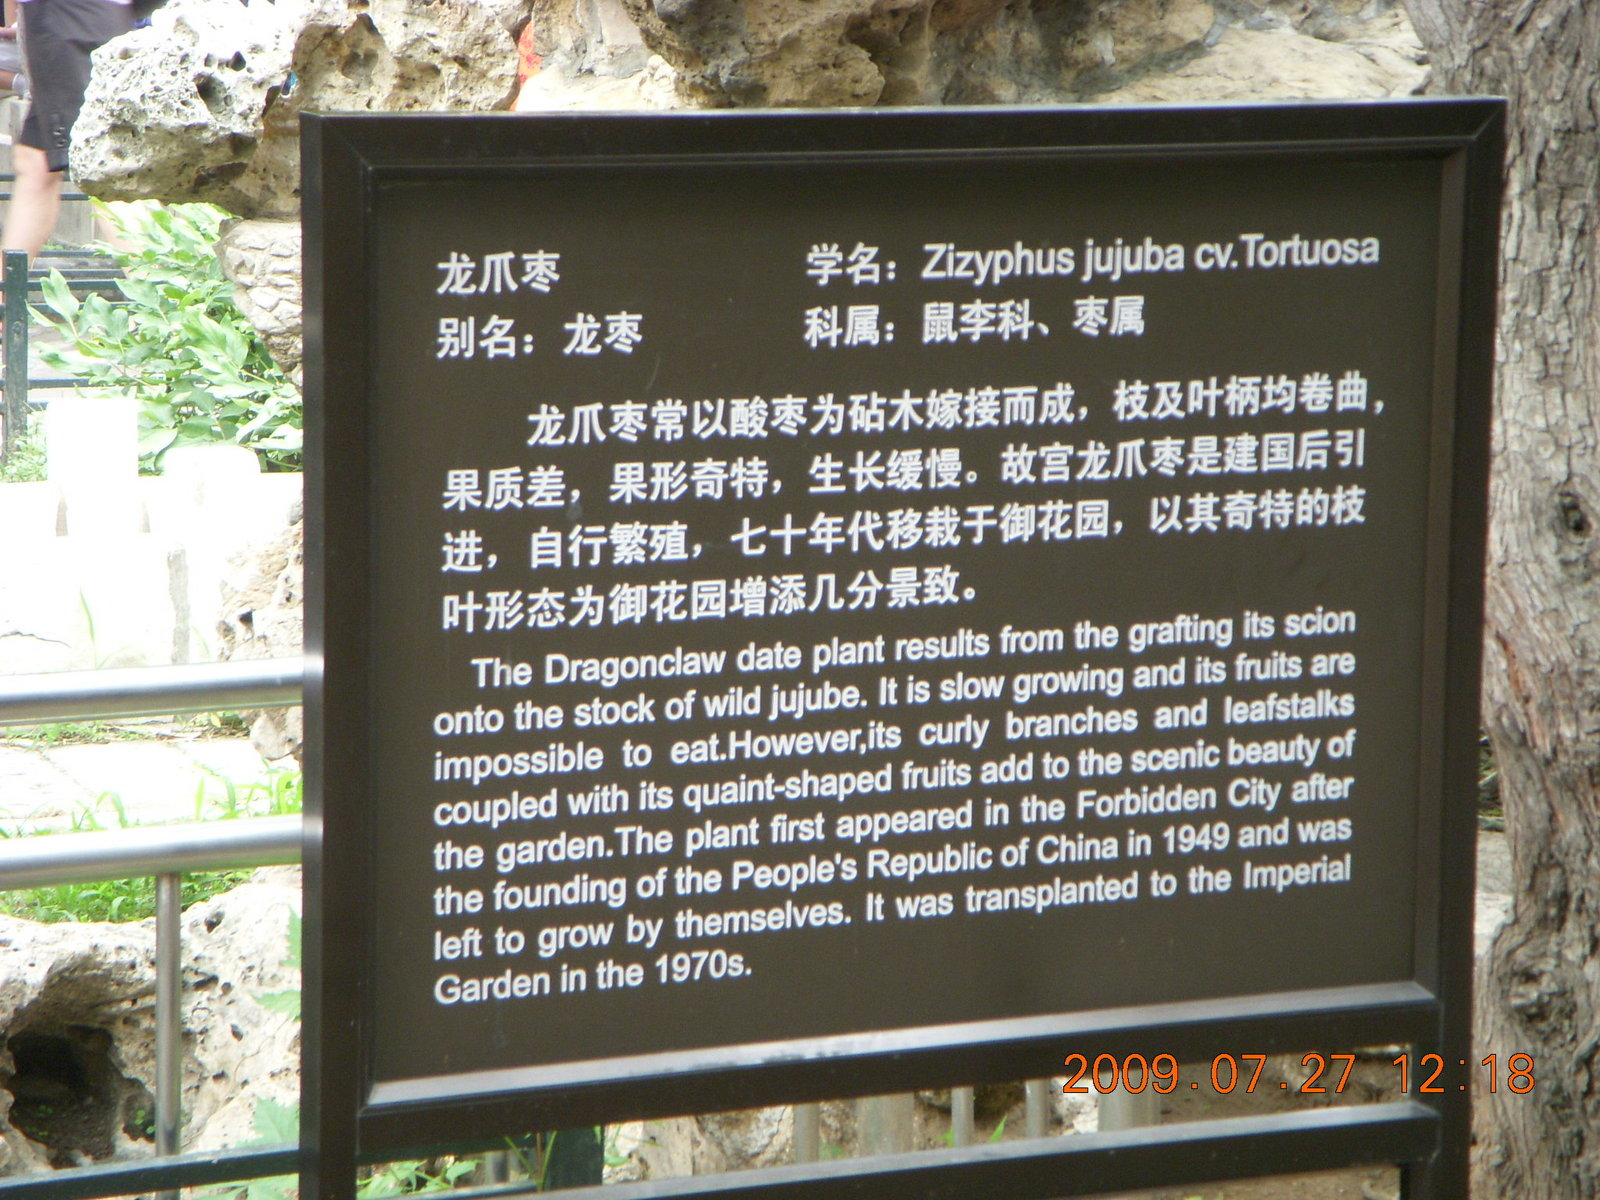 China eclipse - Beijing - Forbidden City sign